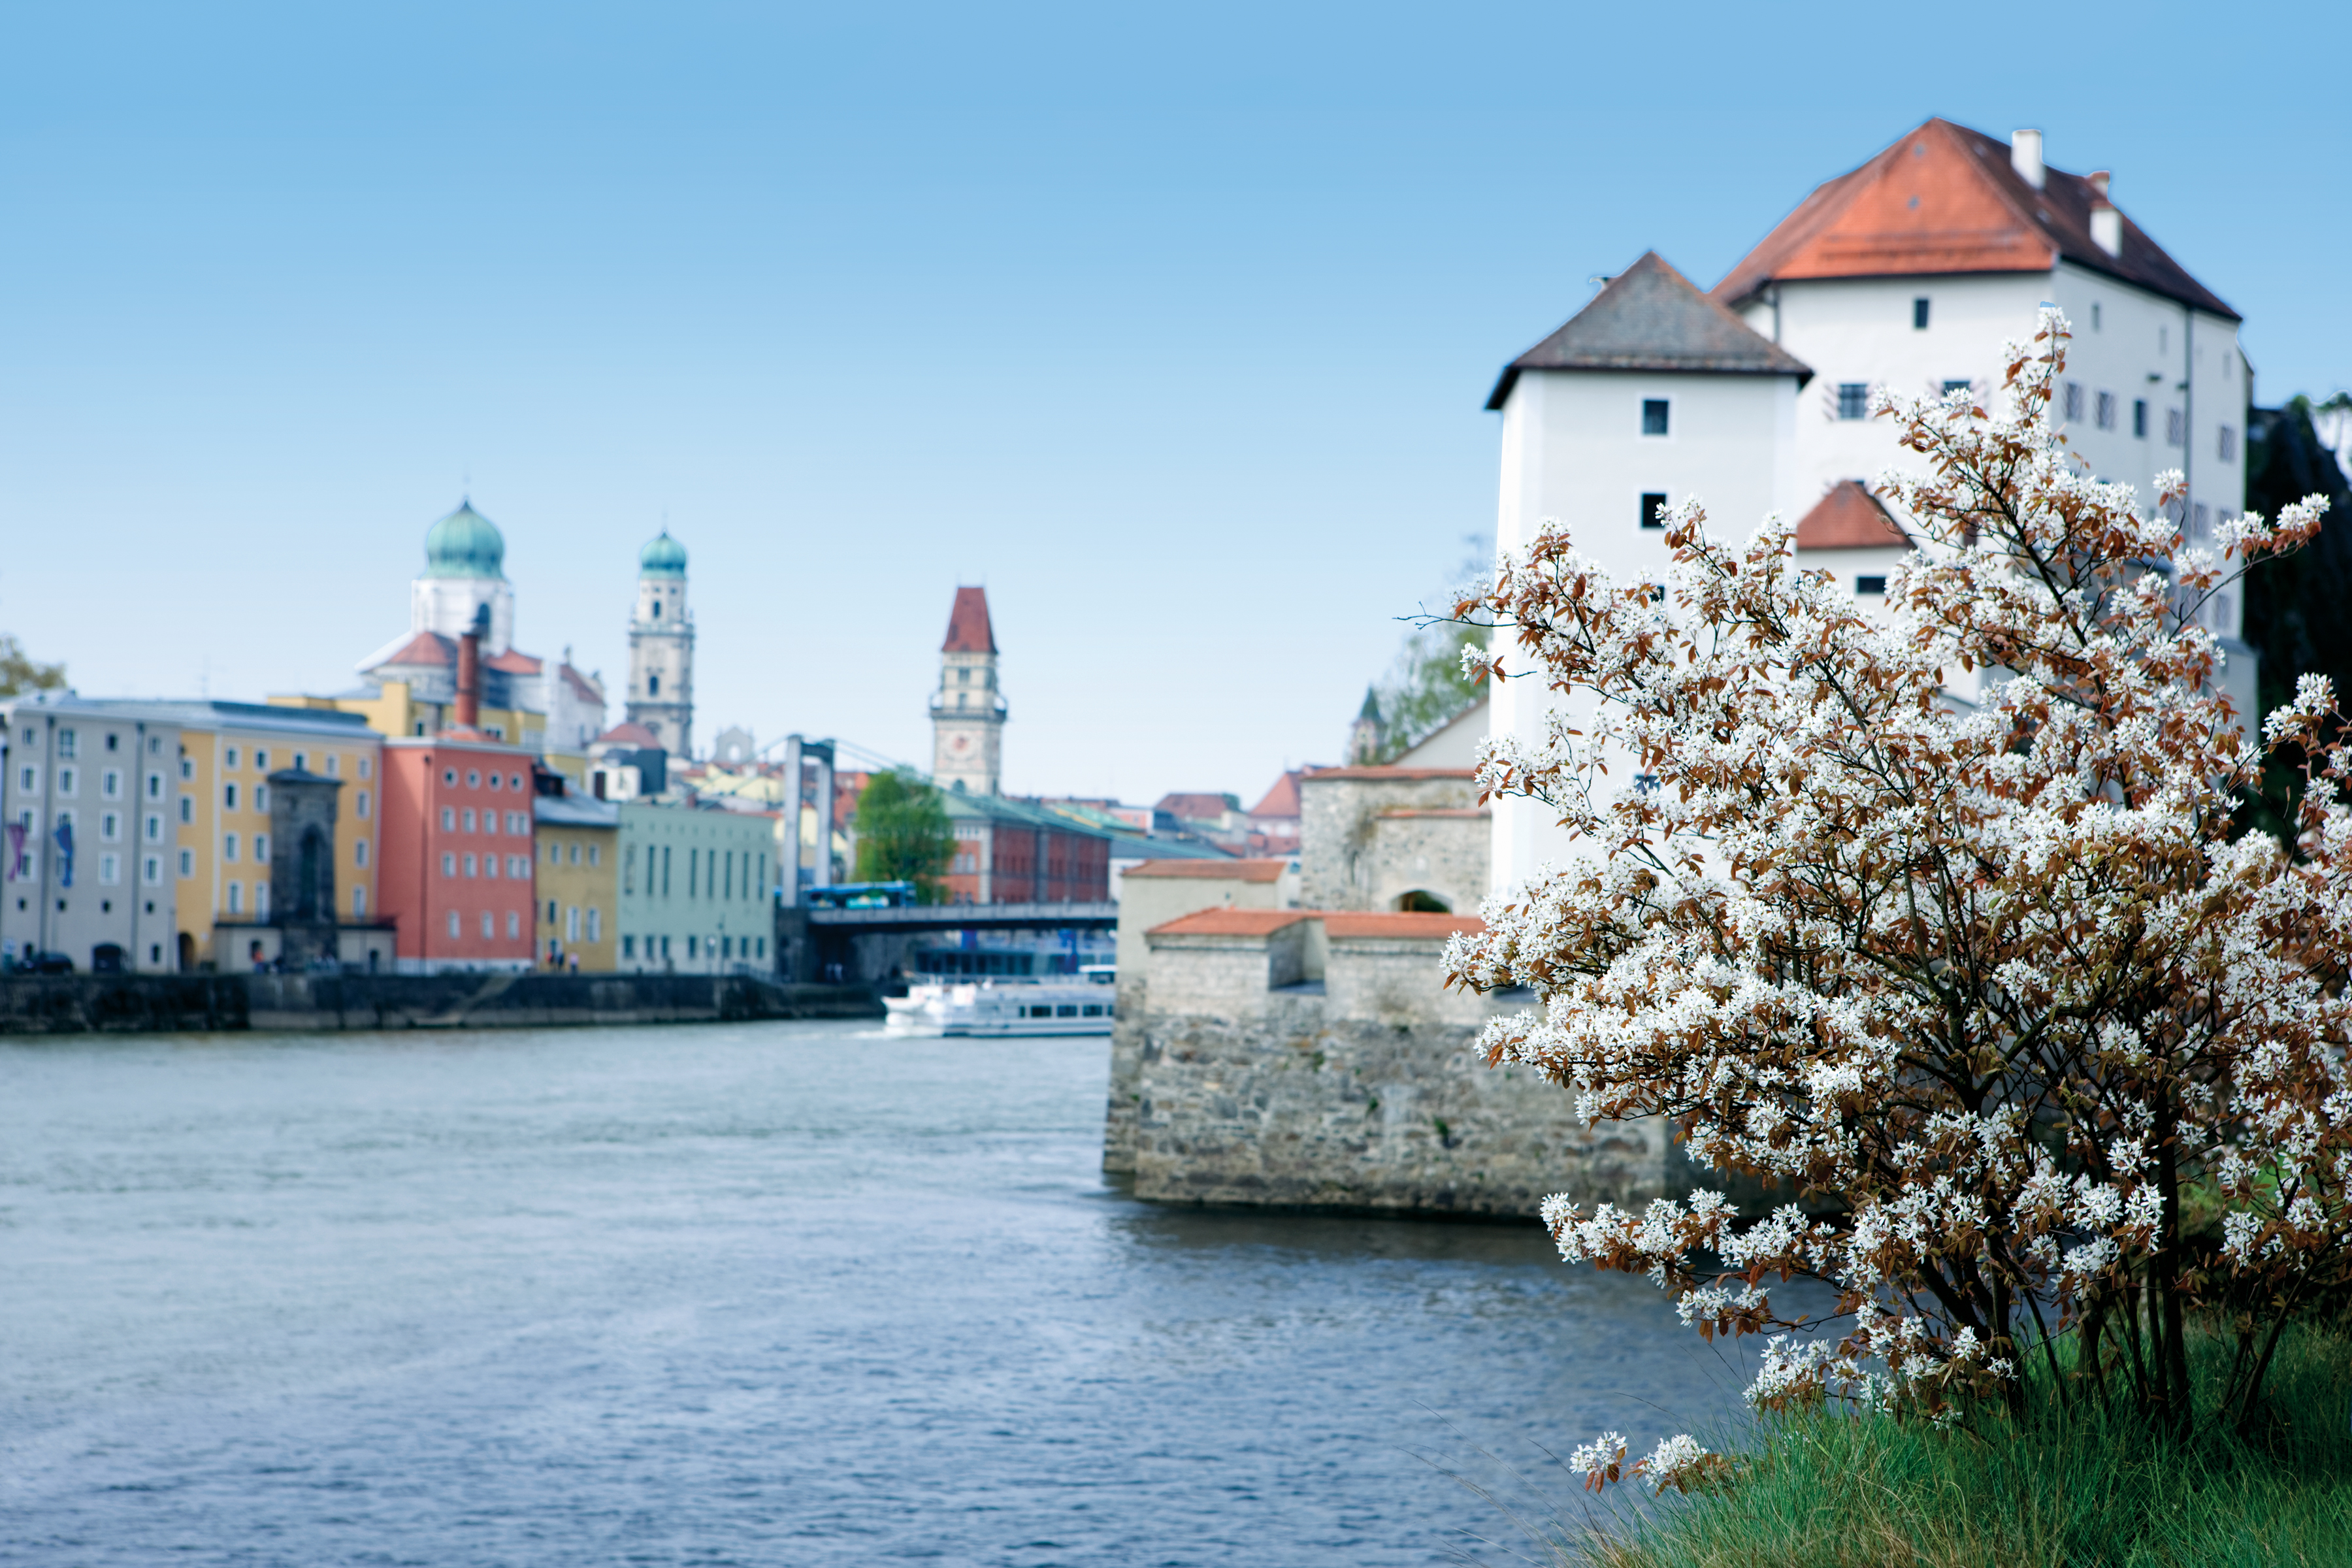 Pastel-coloured houses and blossom trees in Passau, Germany, during spring